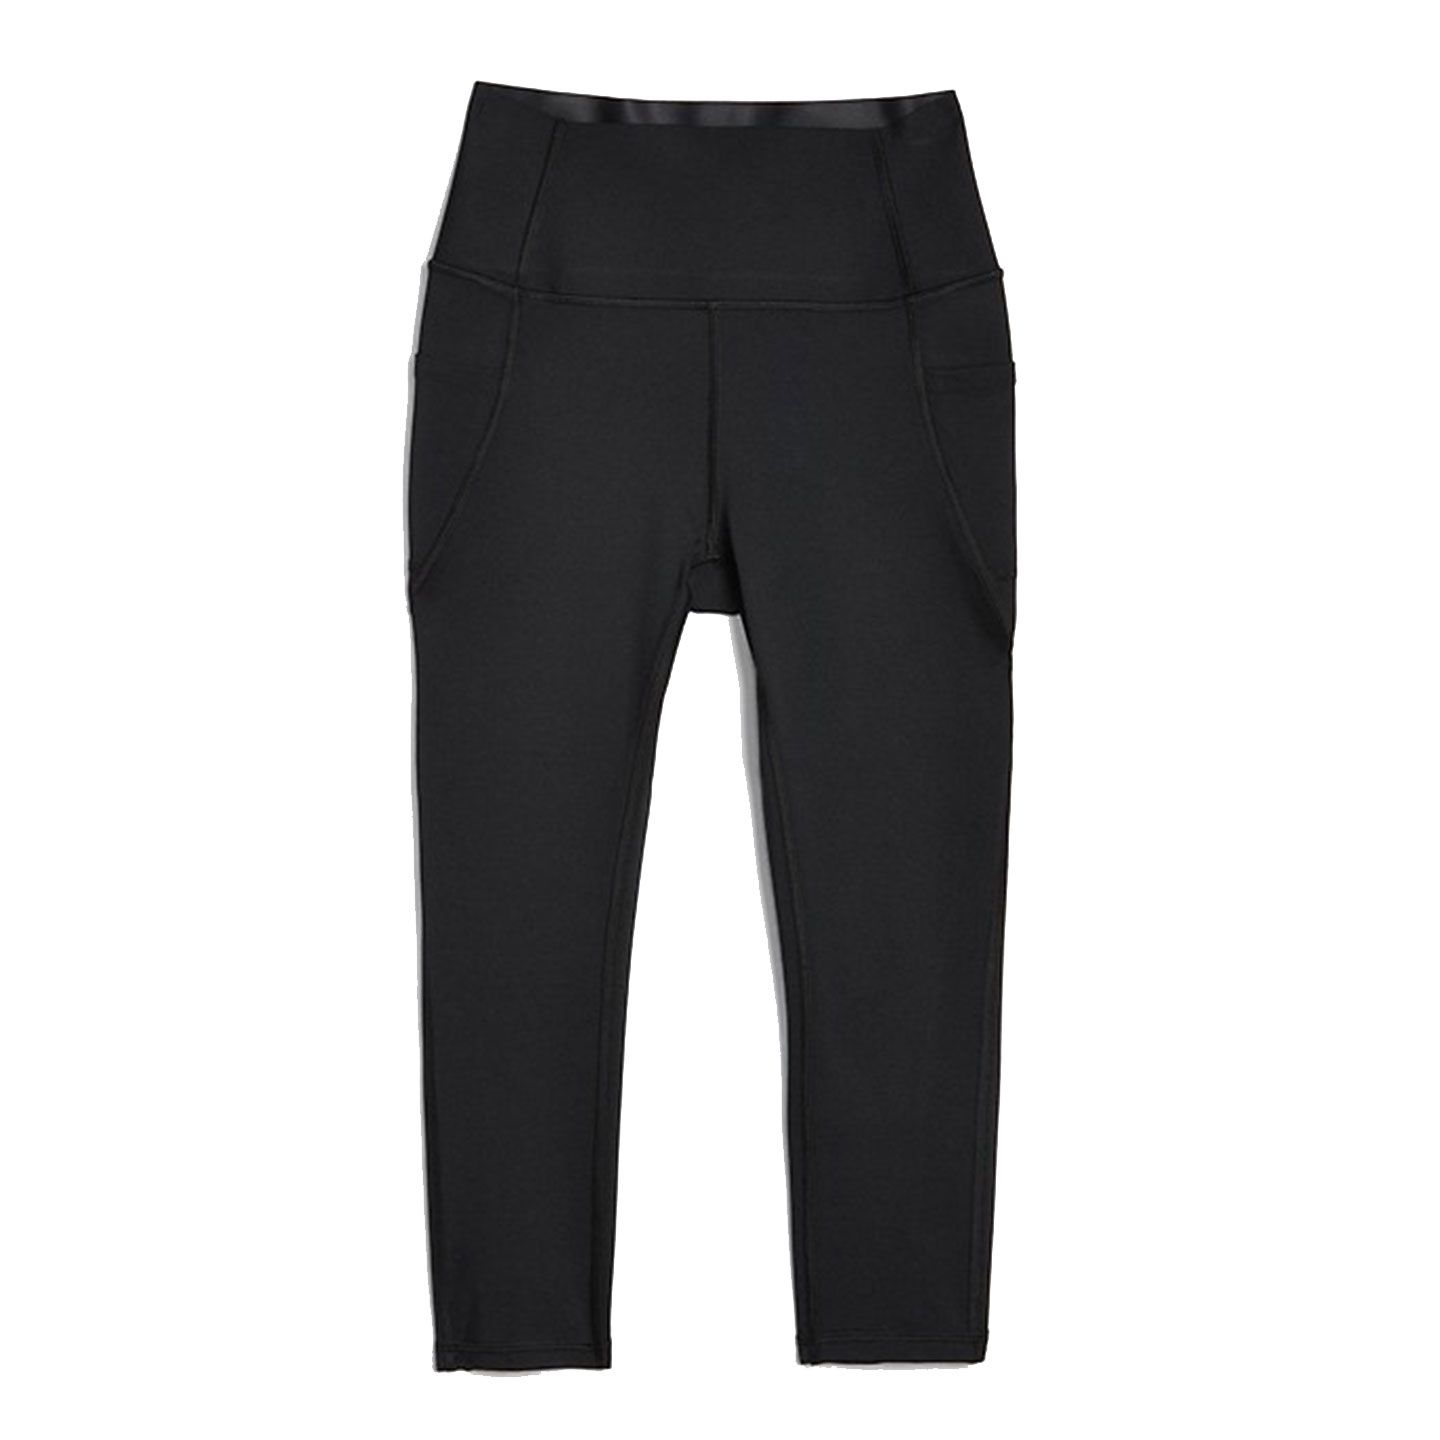 Best Gym Leggings With Pockets